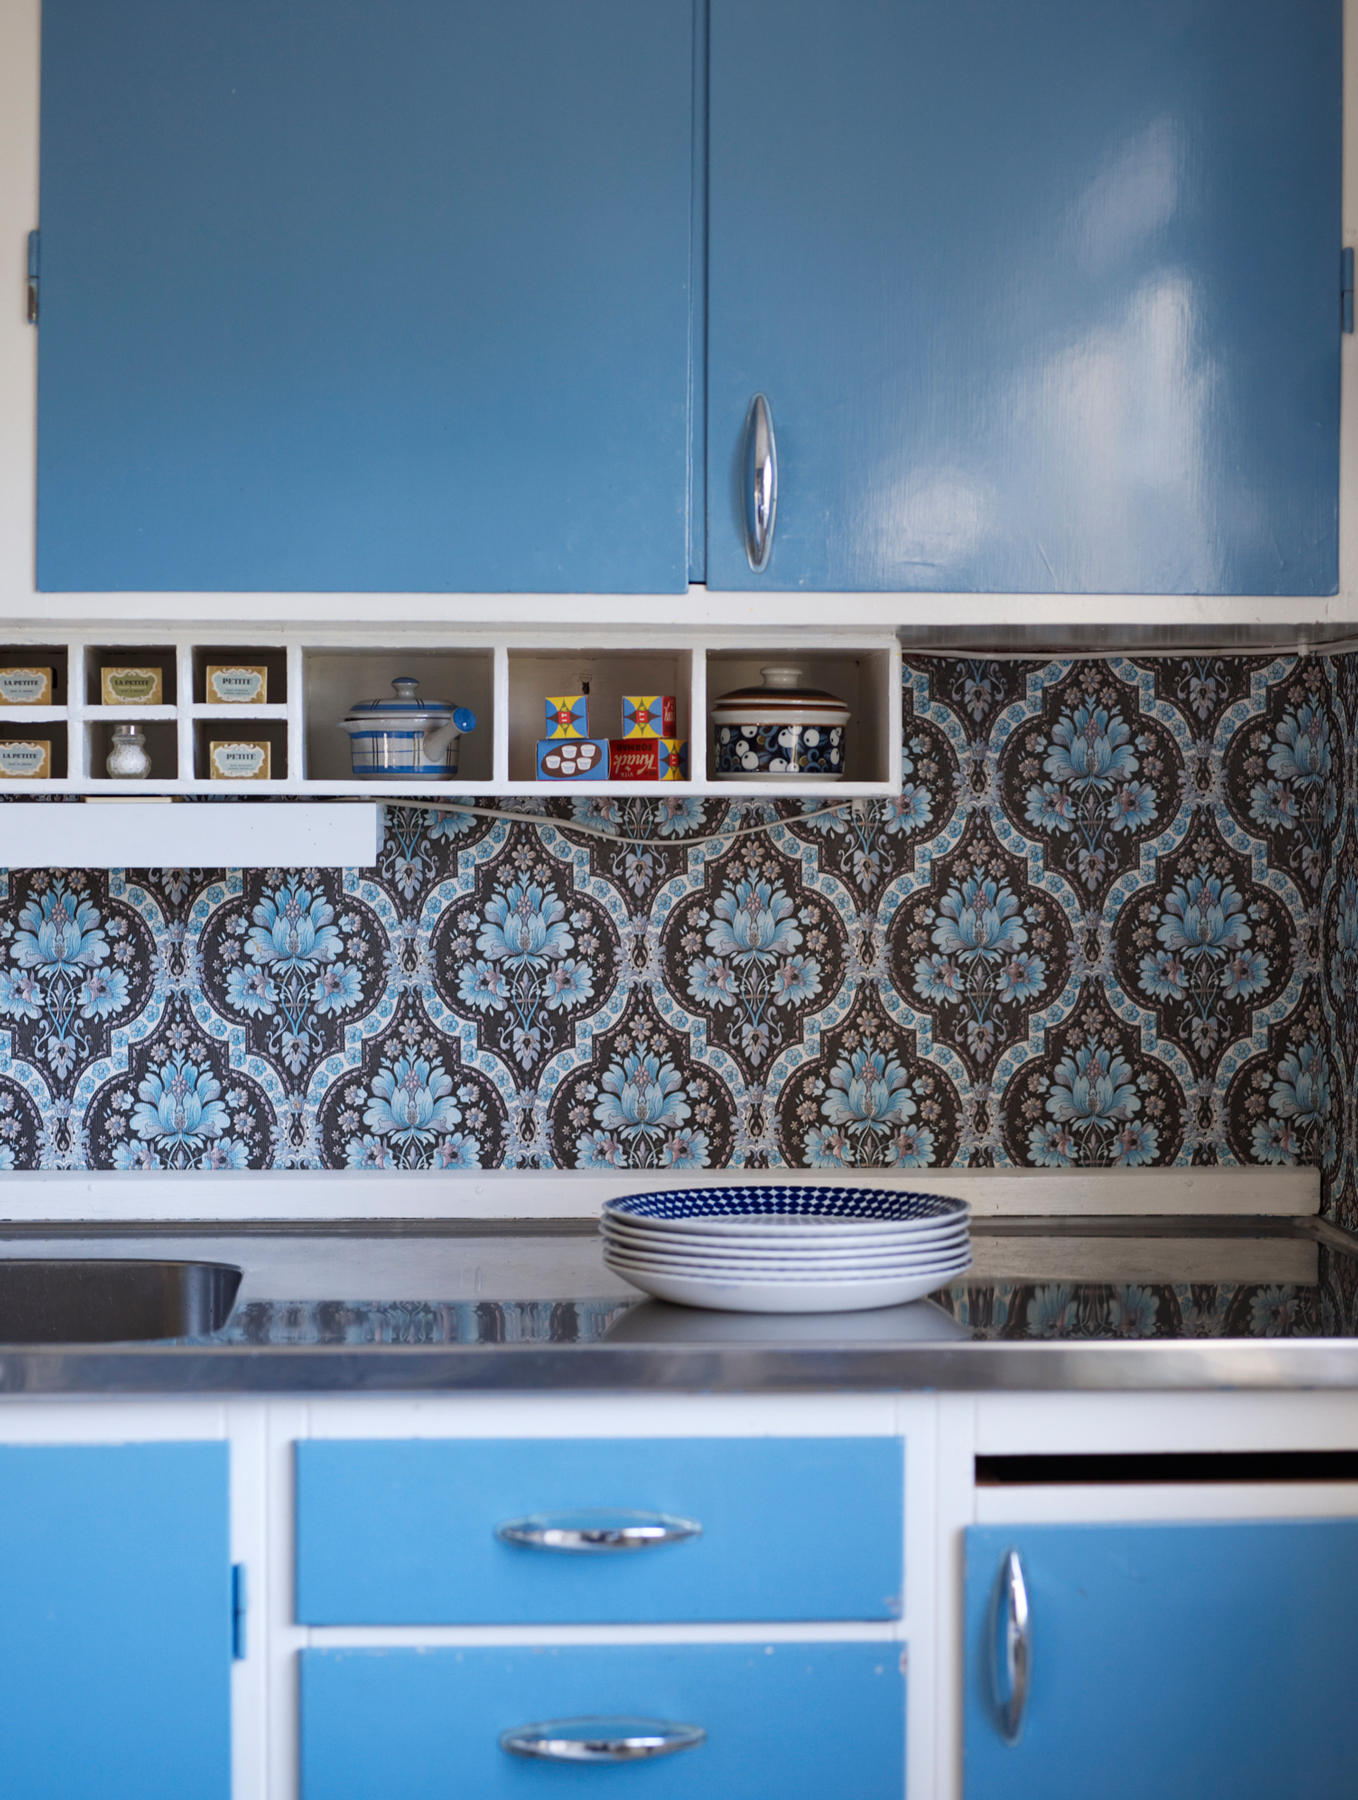 Vintage And Retro Kitchen Decor Ideas To Try Real Simple